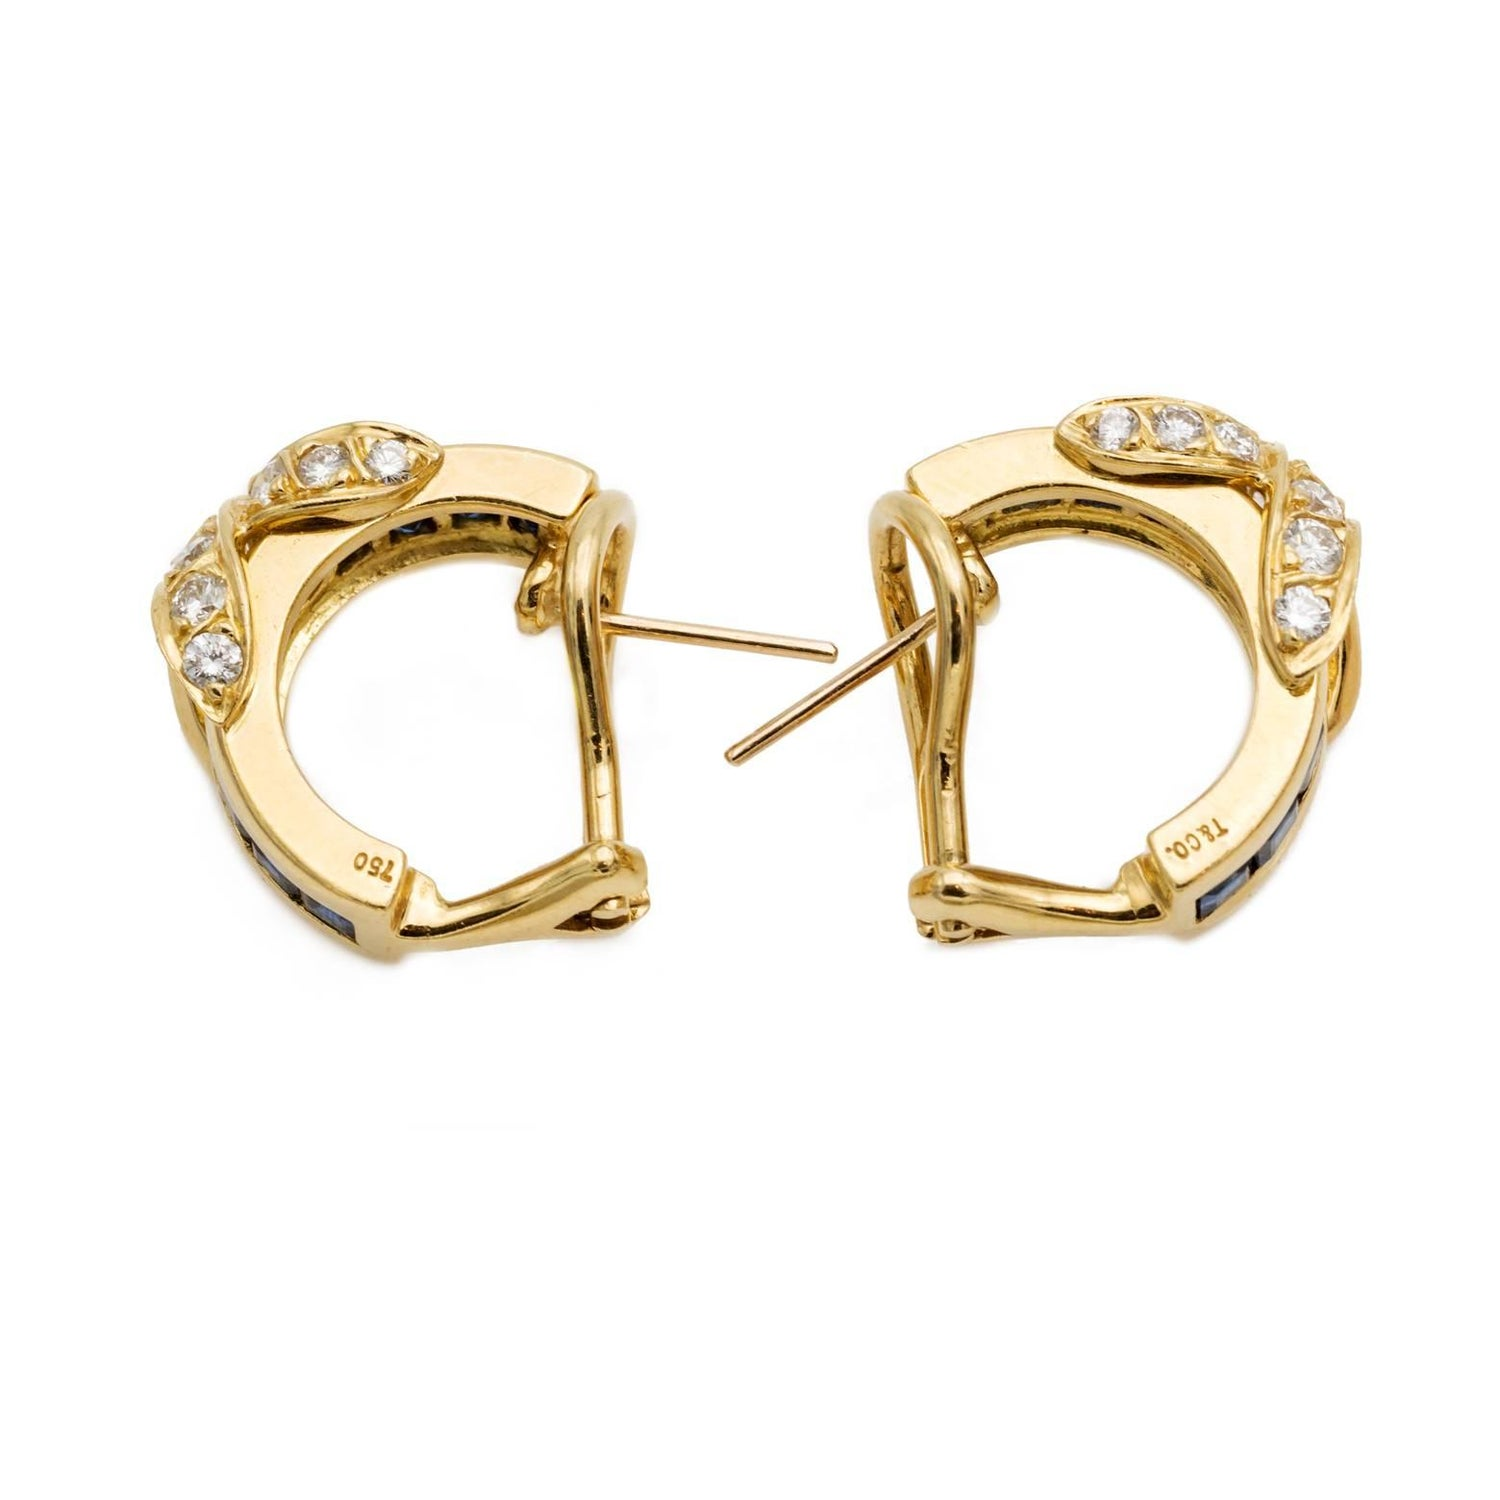 Tiffany and Co Diamond Sapphires Hoop Earrings at 1stdibs